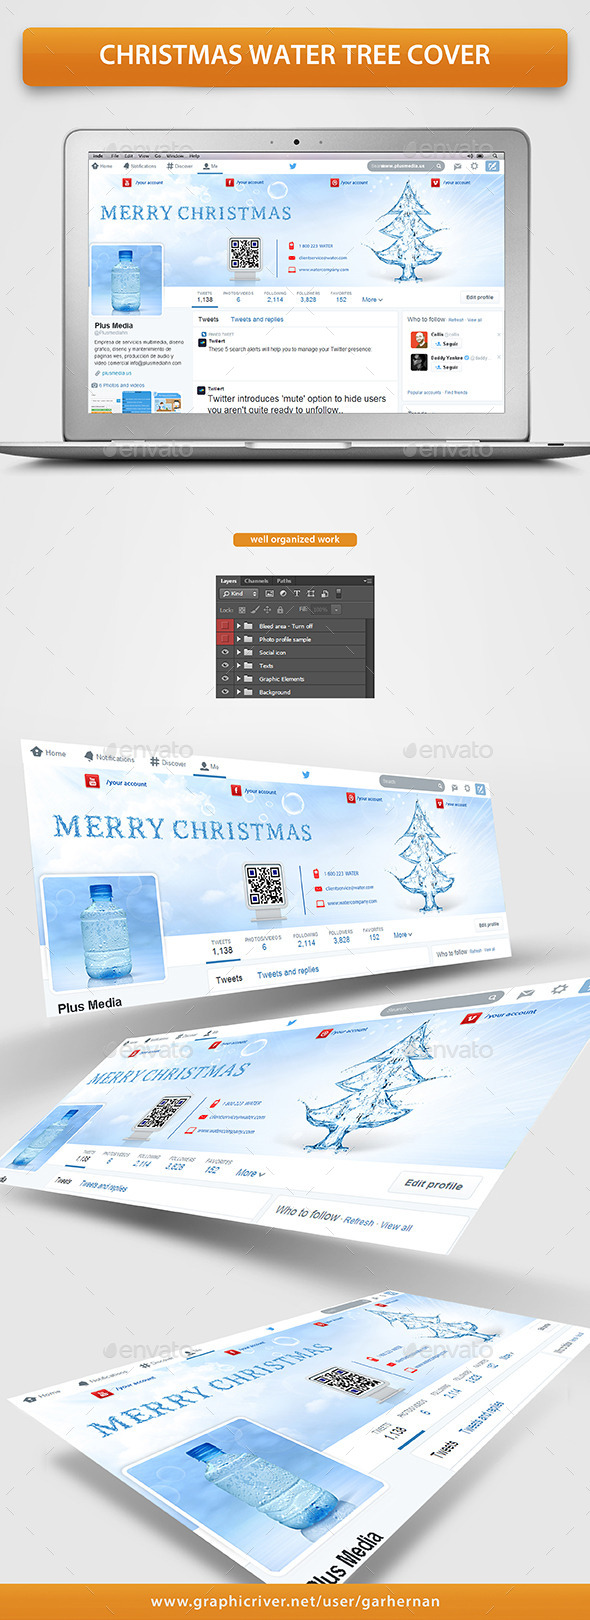 GraphicRiver Christmas Water Tree Cover 9677432